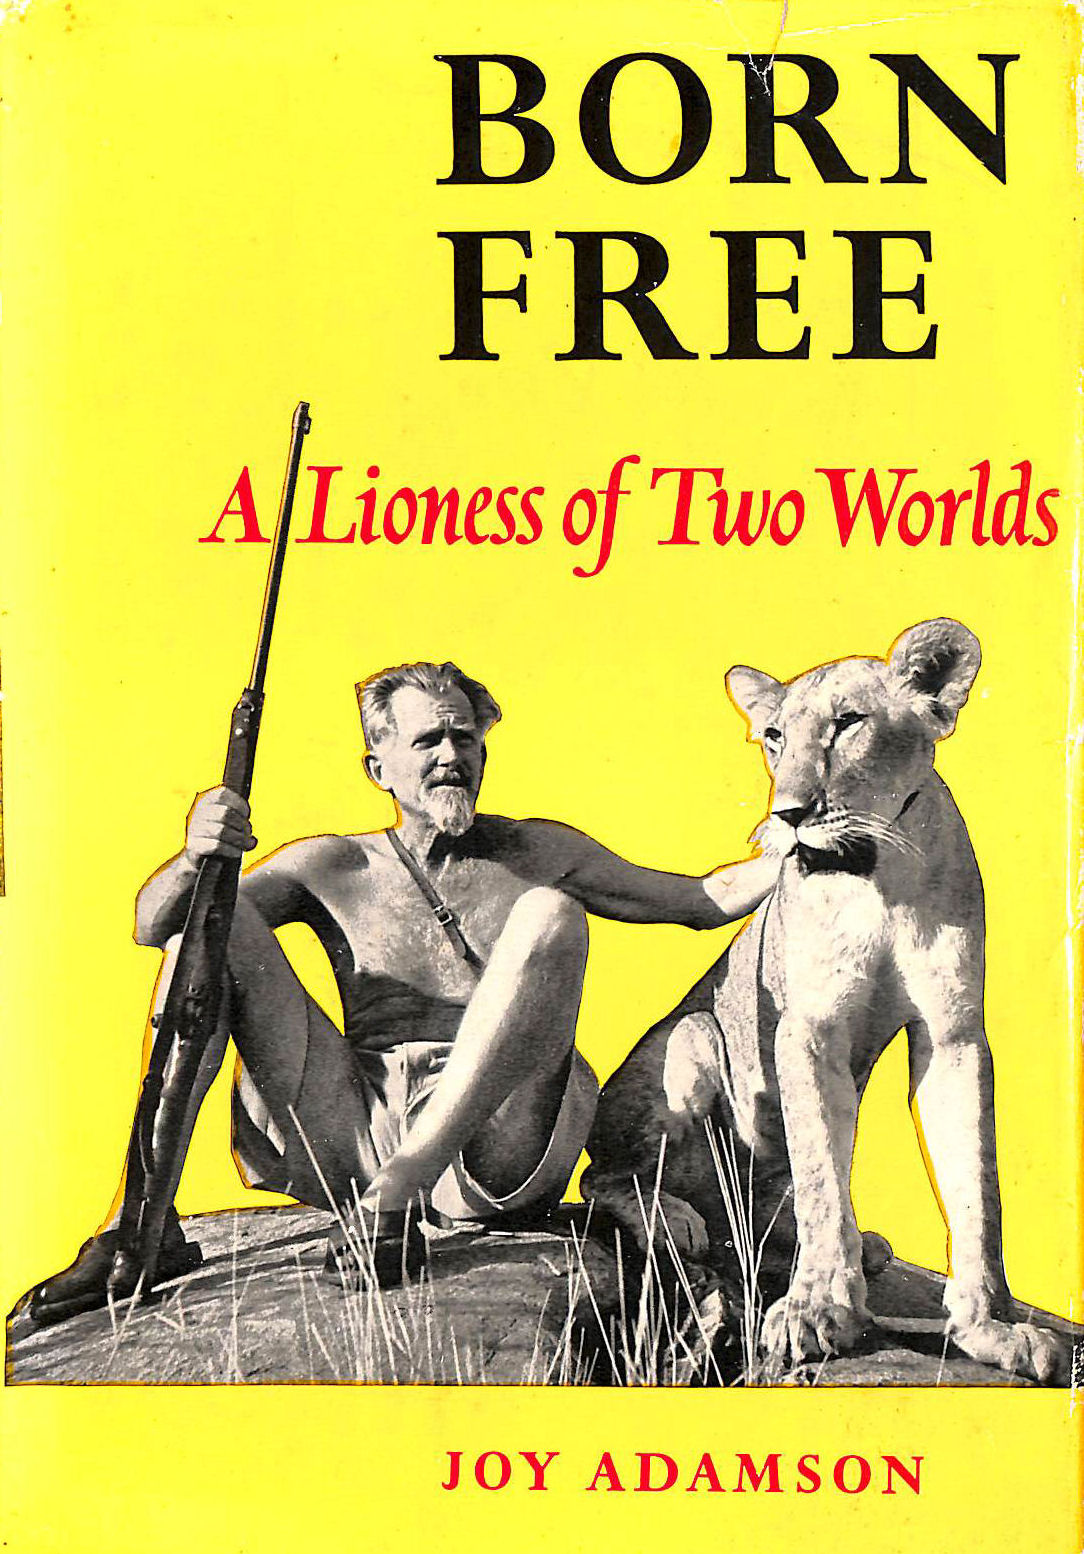 Image for Born Free. A Lioness of Two Worlds.